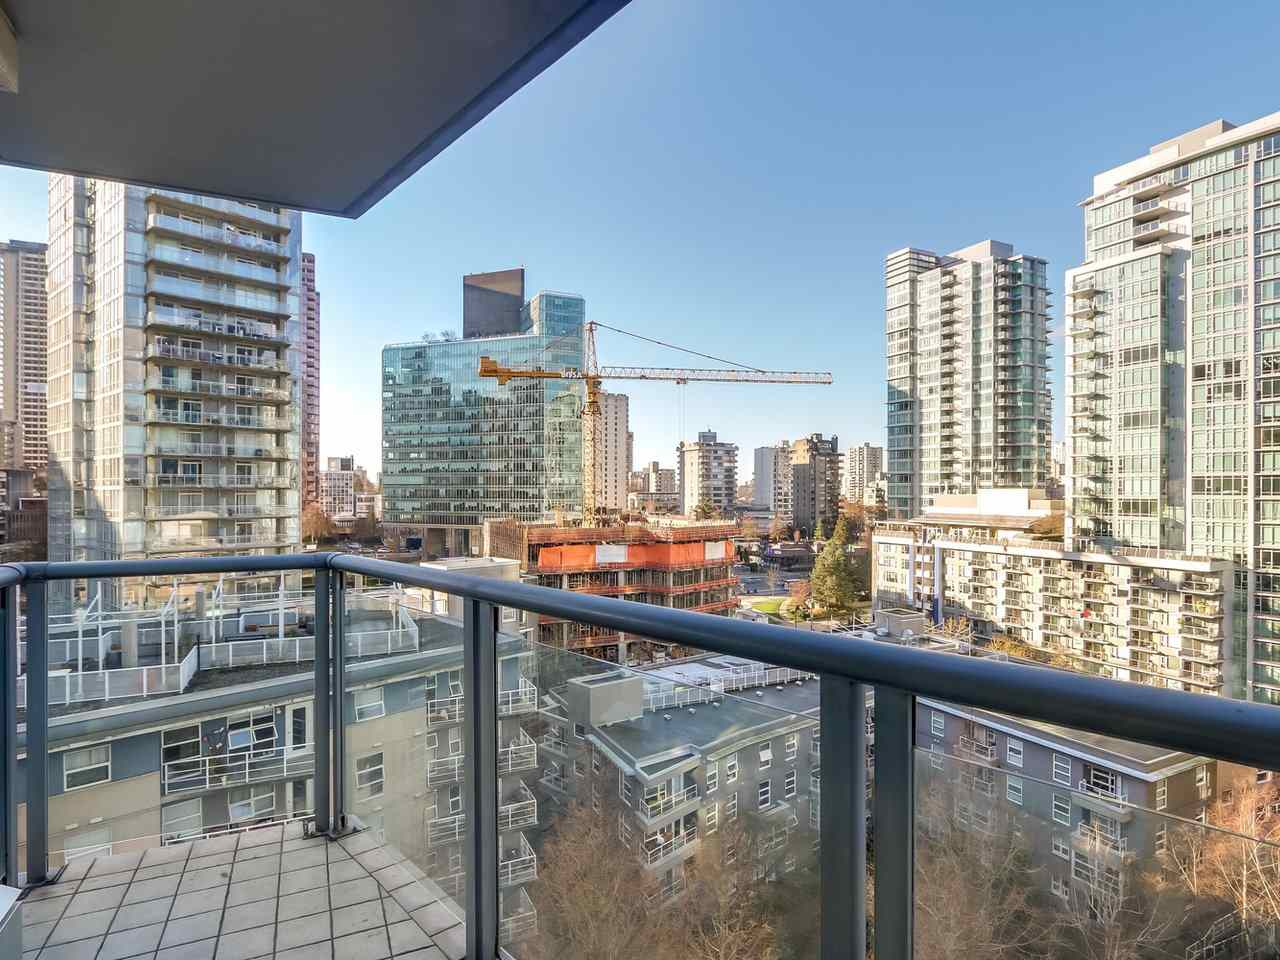 1101 535 NICOLA STREET - Coal Harbour Apartment/Condo for sale, 2 Bedrooms (R2331656) - #12